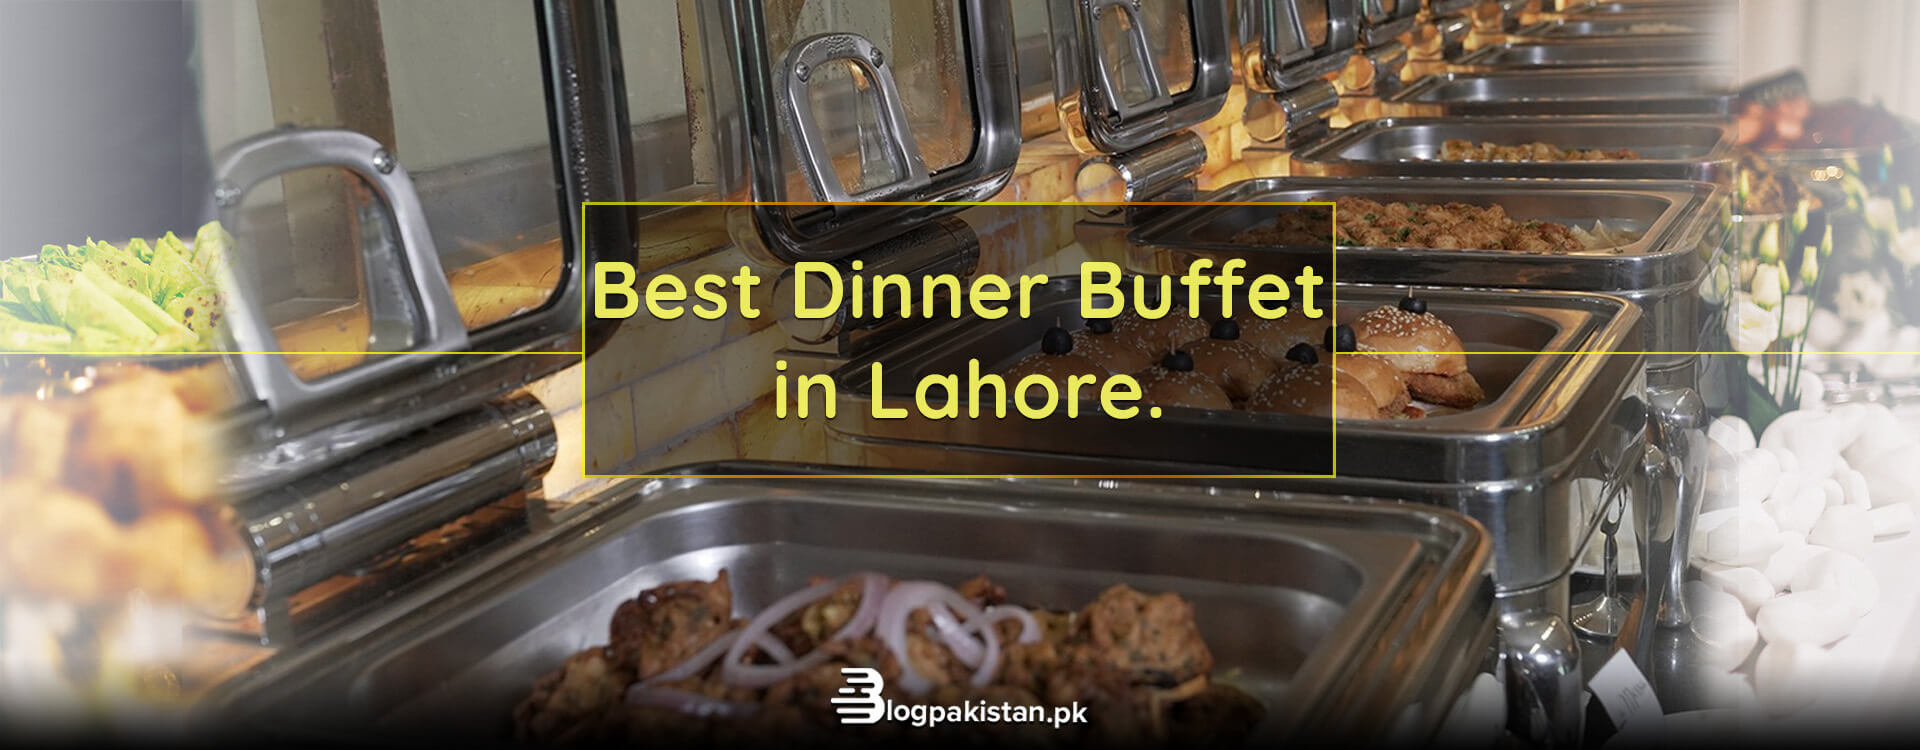 dinner buffet in lahore